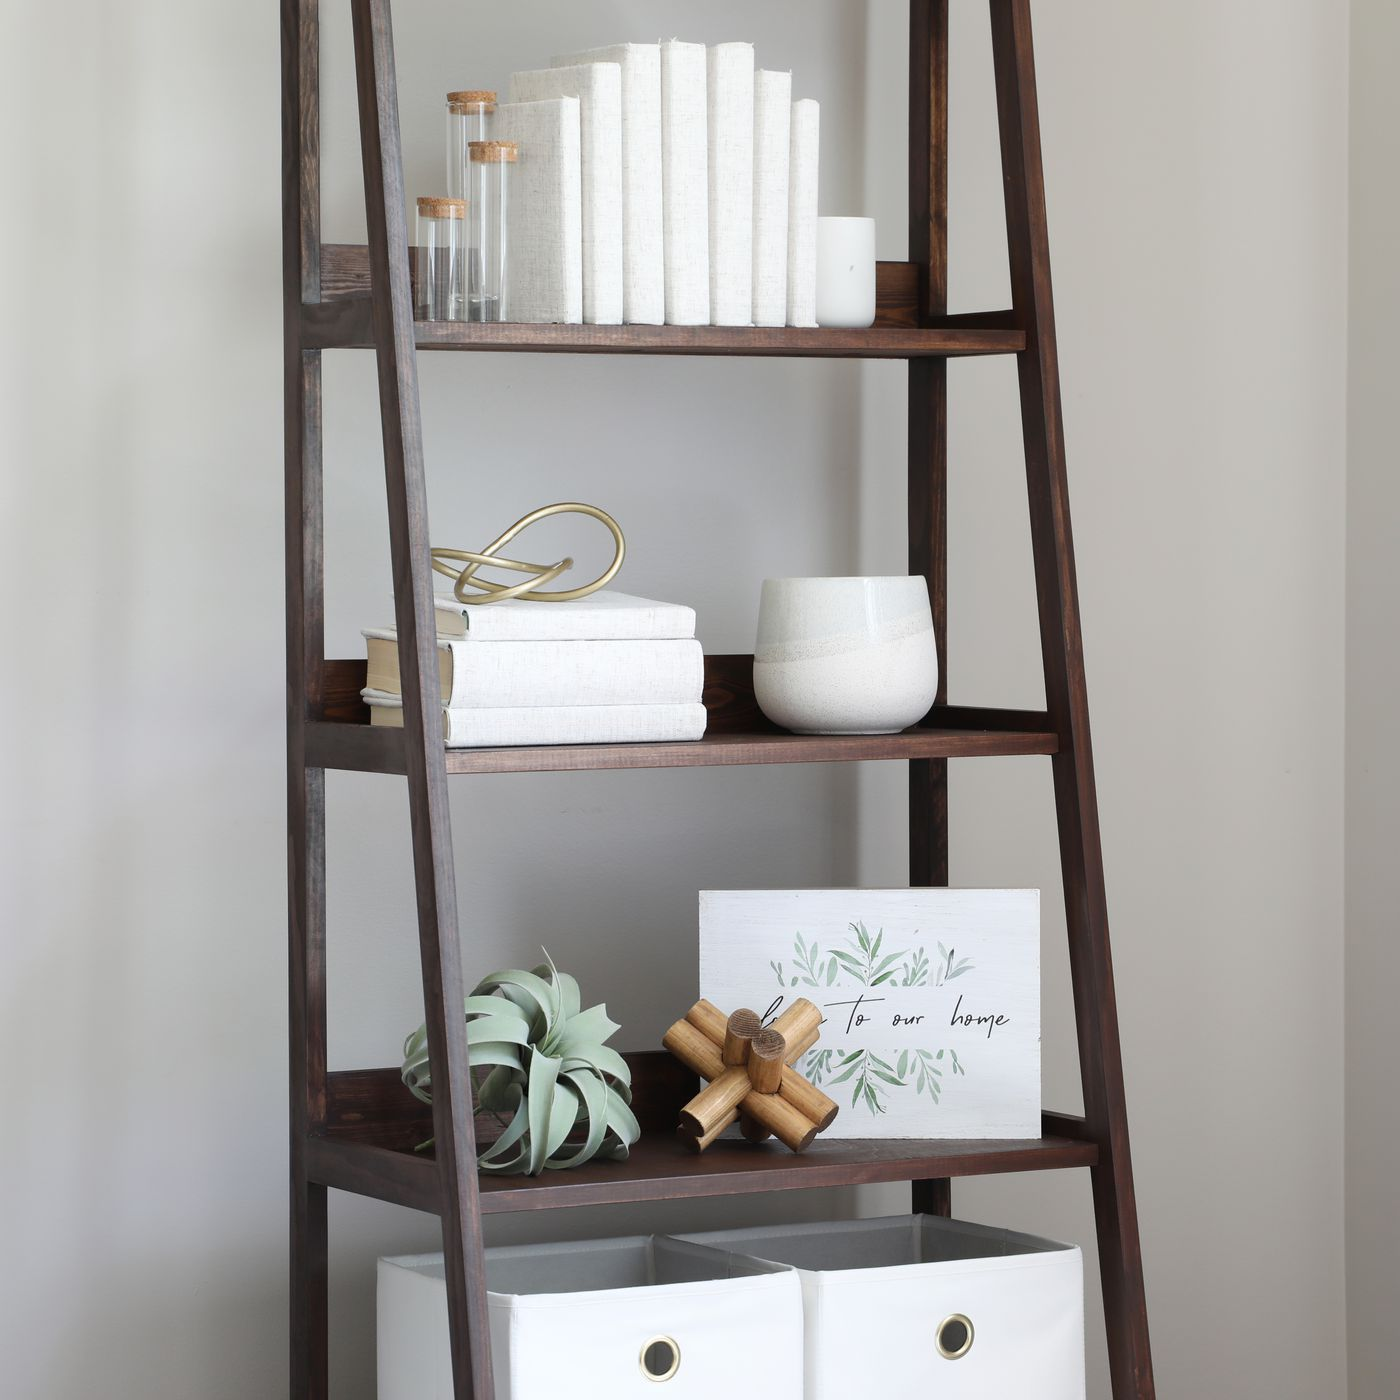 How To Build A Leaning Ladder Shelf Video This Old House